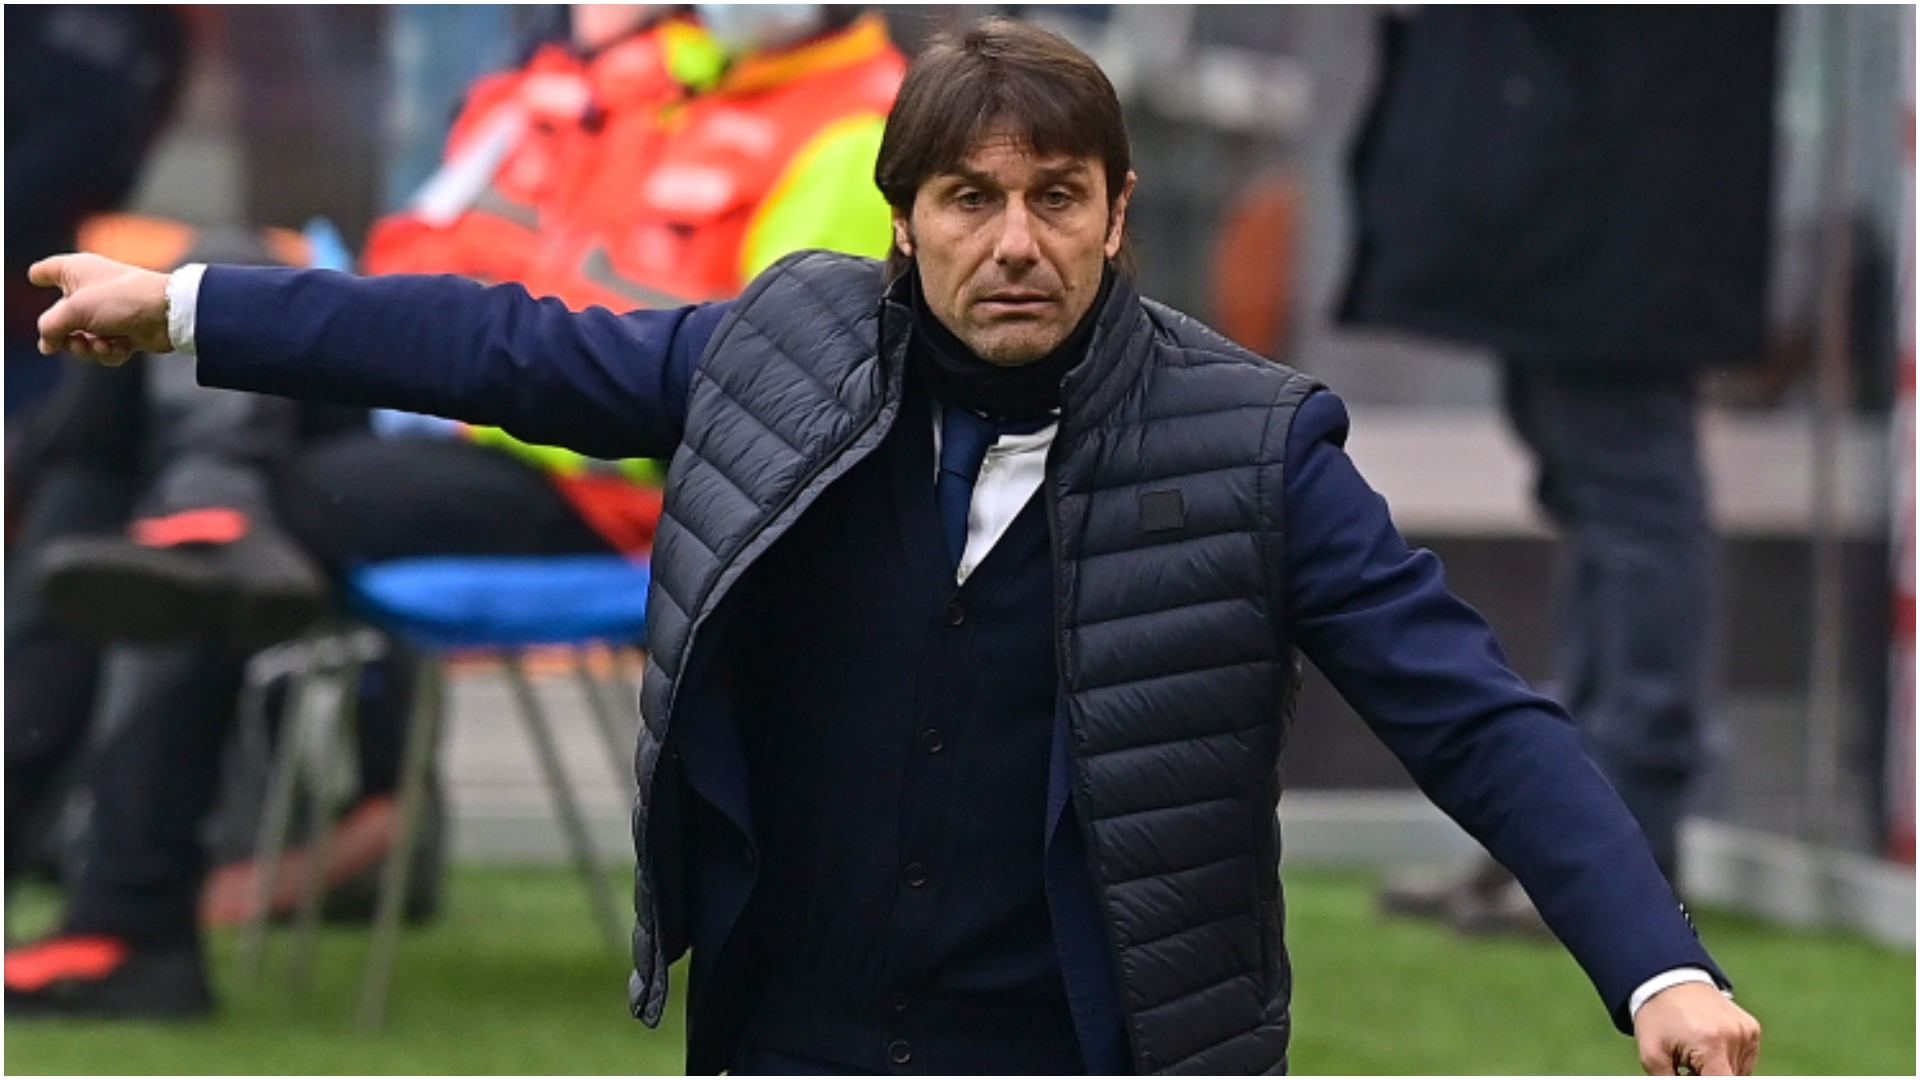 Conte left satisfied after derby win as Eriksen and Perisic receive praise